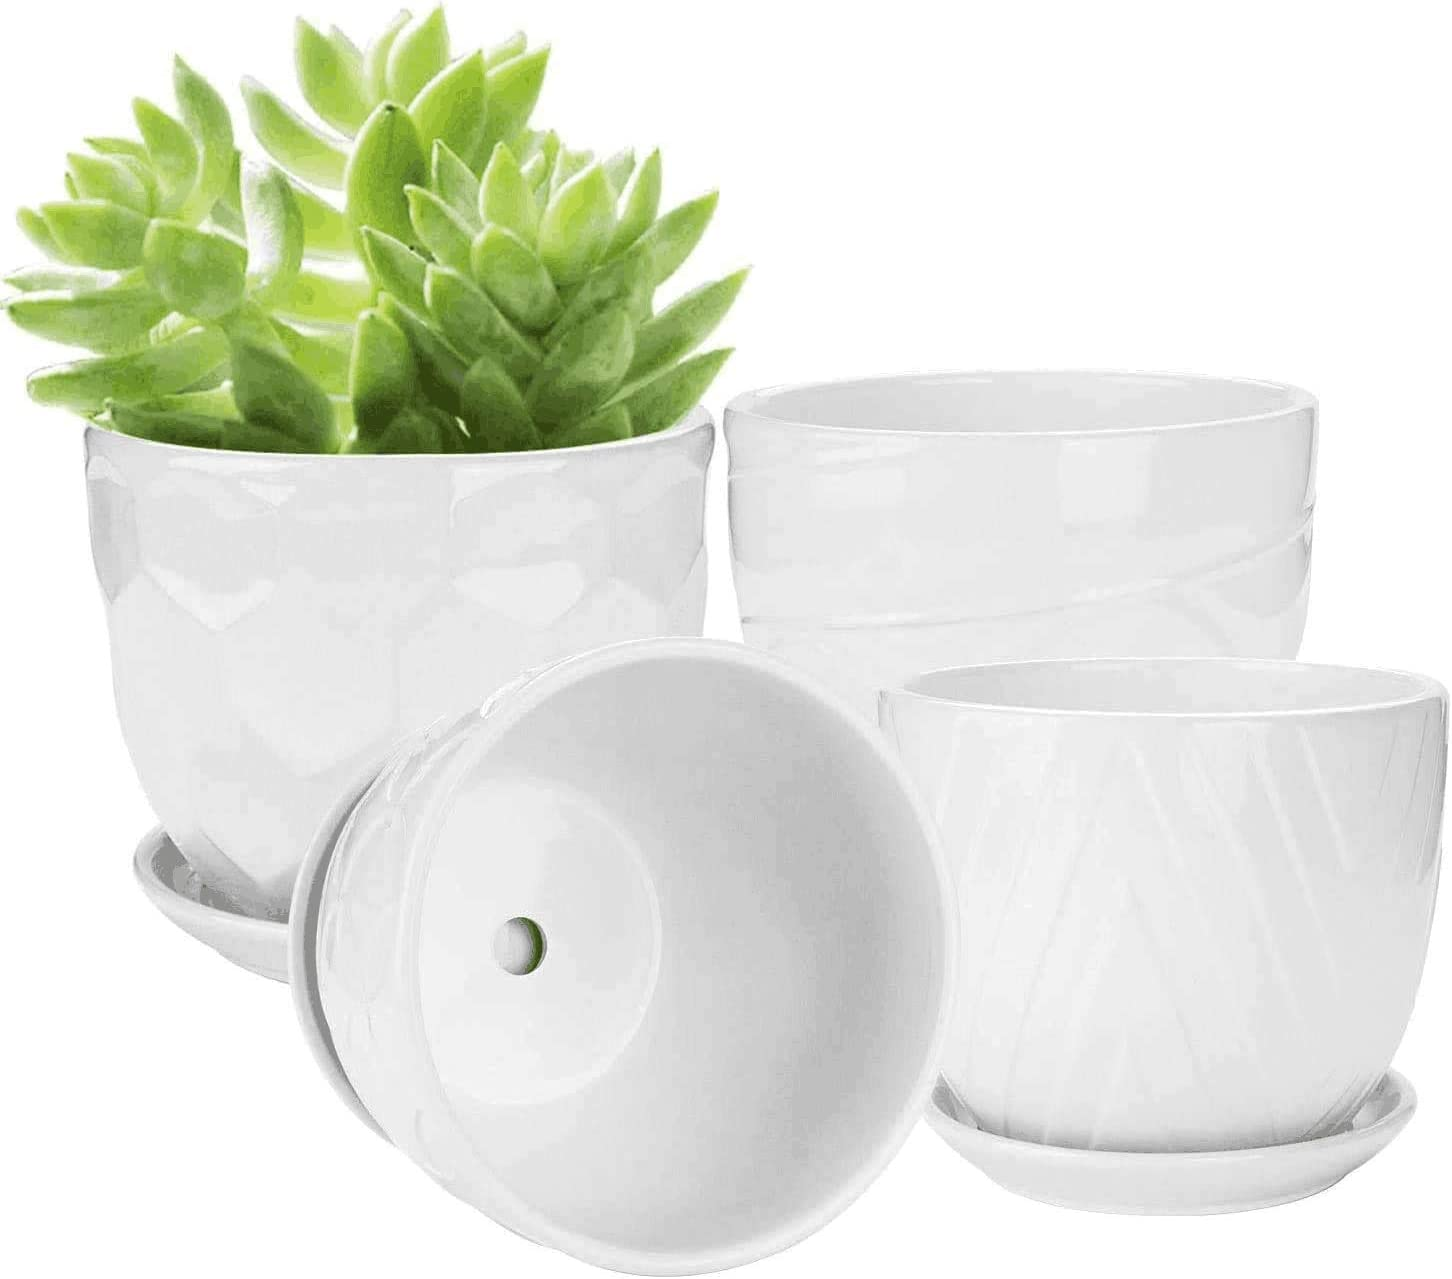 Ufrount White Ceramic Planter Pot with Drainage Holes, Succulent Planter Pots Planting Pot Flower Pots for Mini Plant Perfect for Garden, Kitchen, Windowsill - Set of 4 (4.7 Inches)